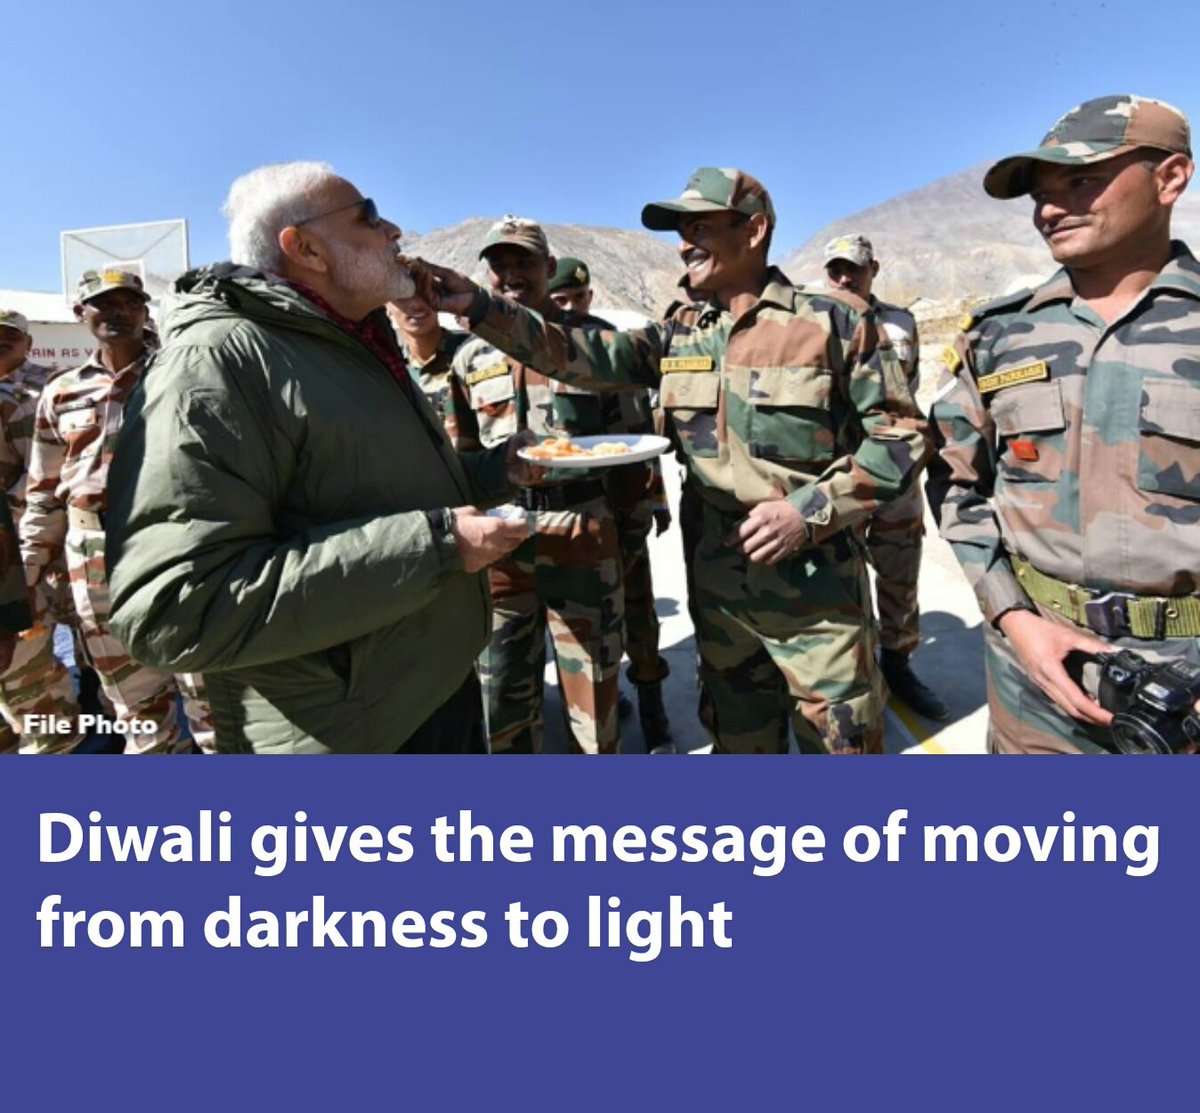 Diwali gives the message of moving from darkness to light  via NMApp #Diwali #diwaligreetings #DiwaliWithADifference